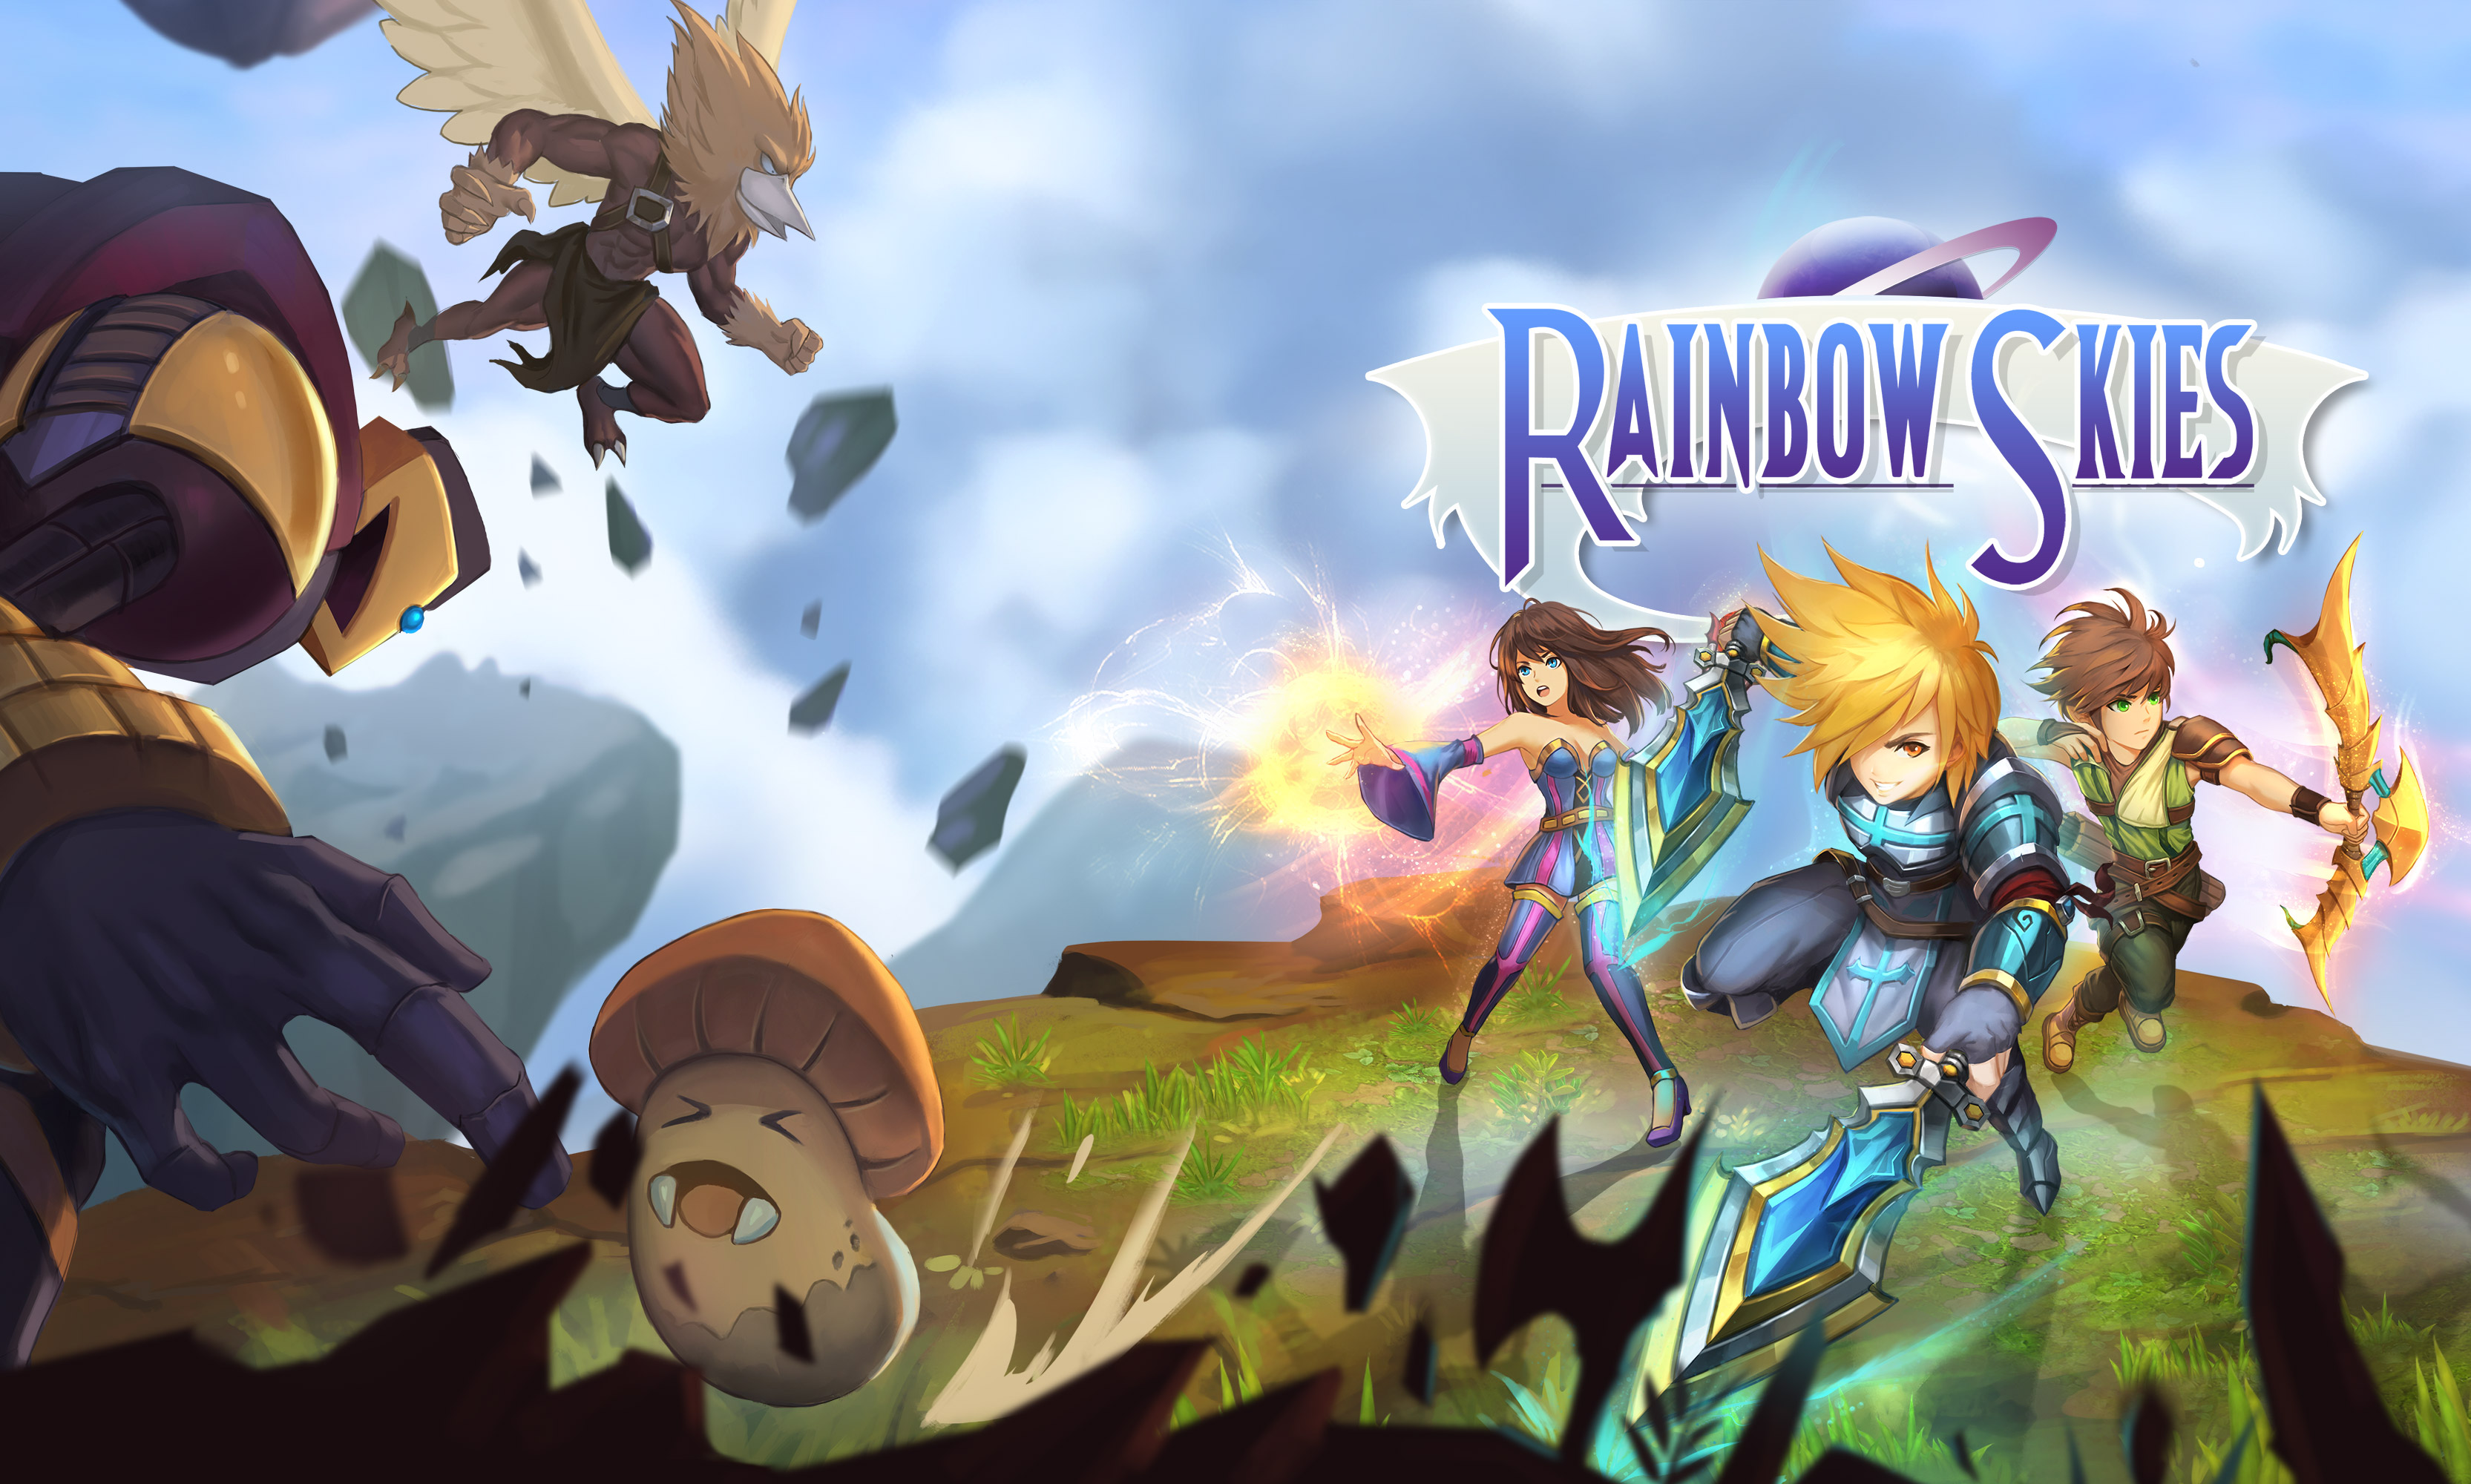 Rainbow Skies Group